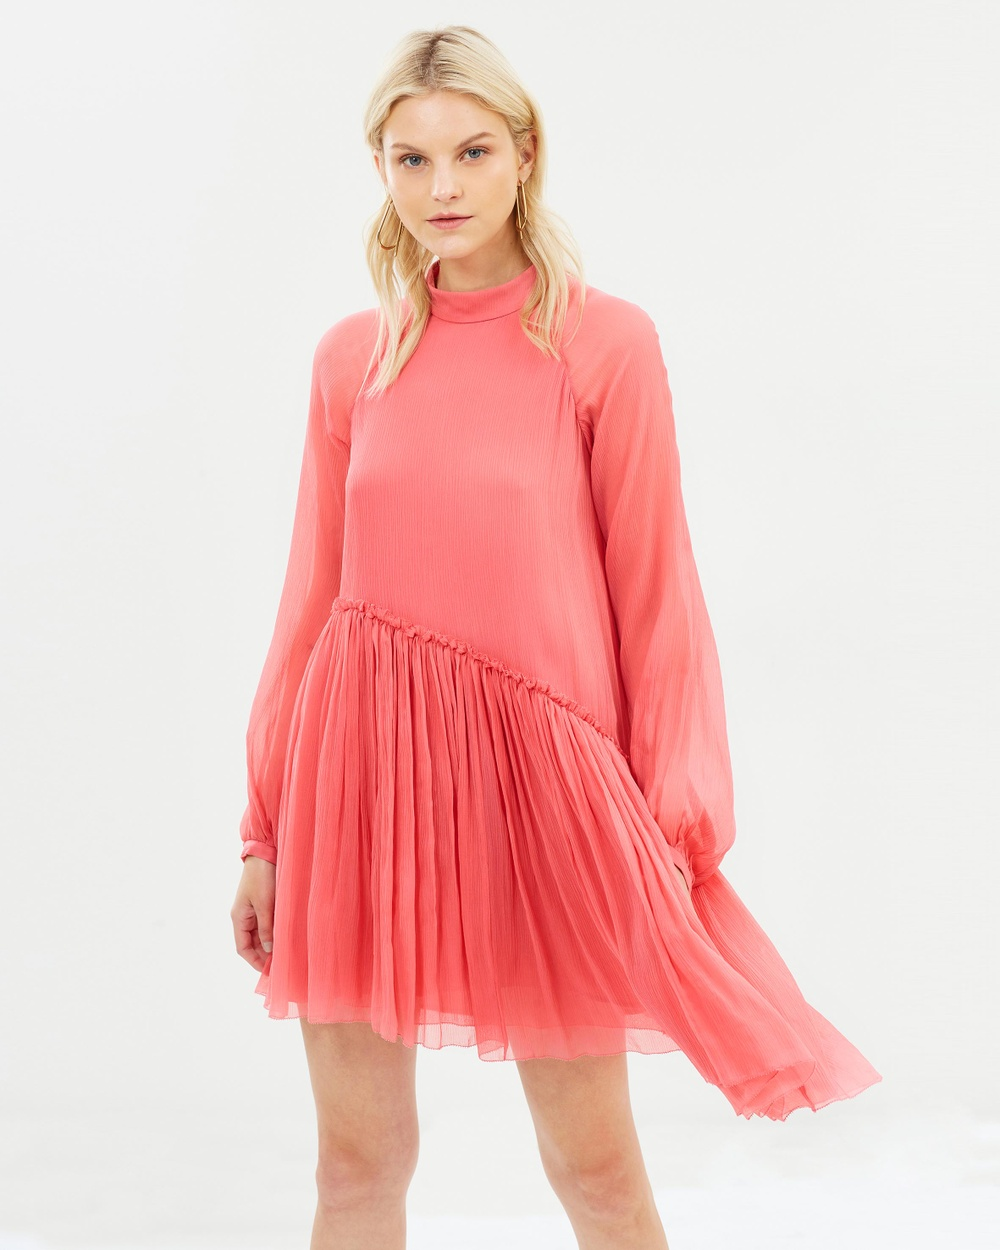 Manning Cartell Rose Featherweight Mini Dress